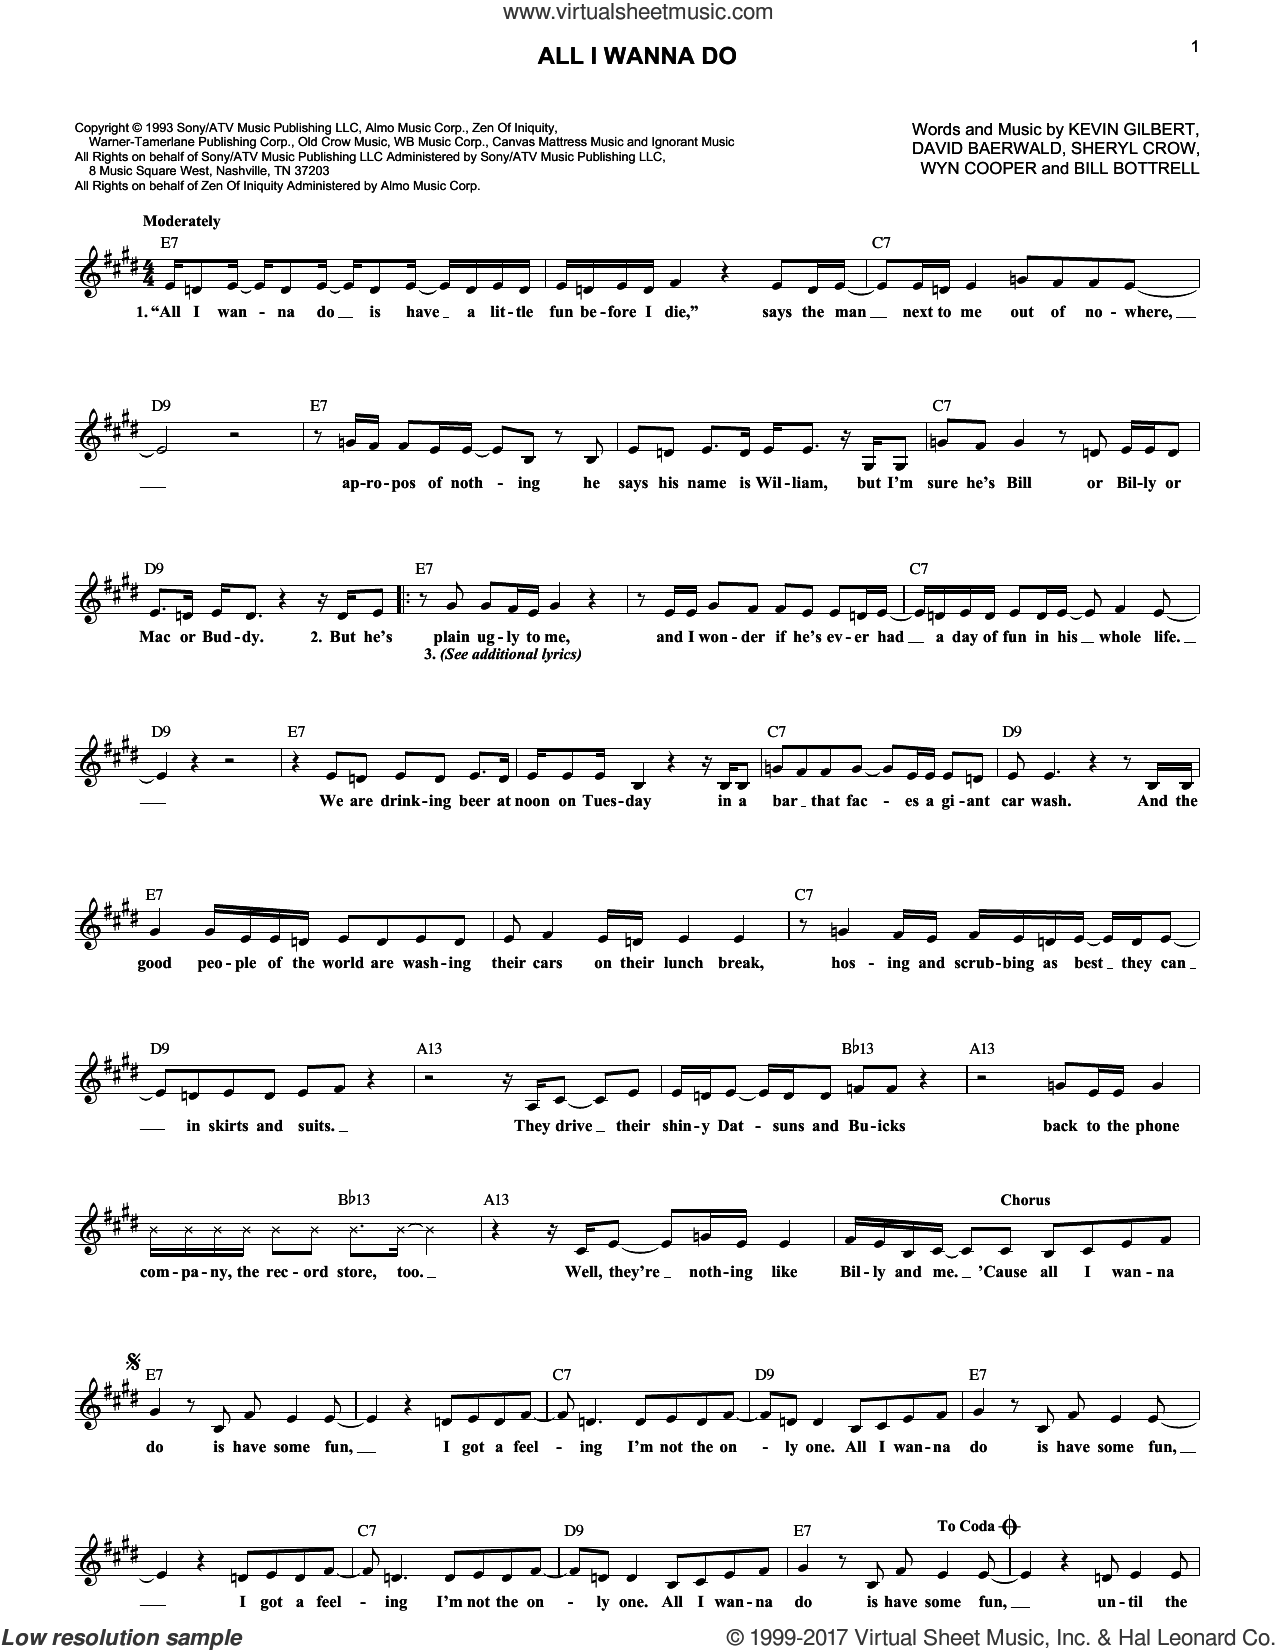 All I Wanna Do sheet music for voice and other instruments (fake book) by Sheryl Crow, Bill Bottrell, David Baerwald, Kevin Gilbert and Wyn Cooper, intermediate skill level